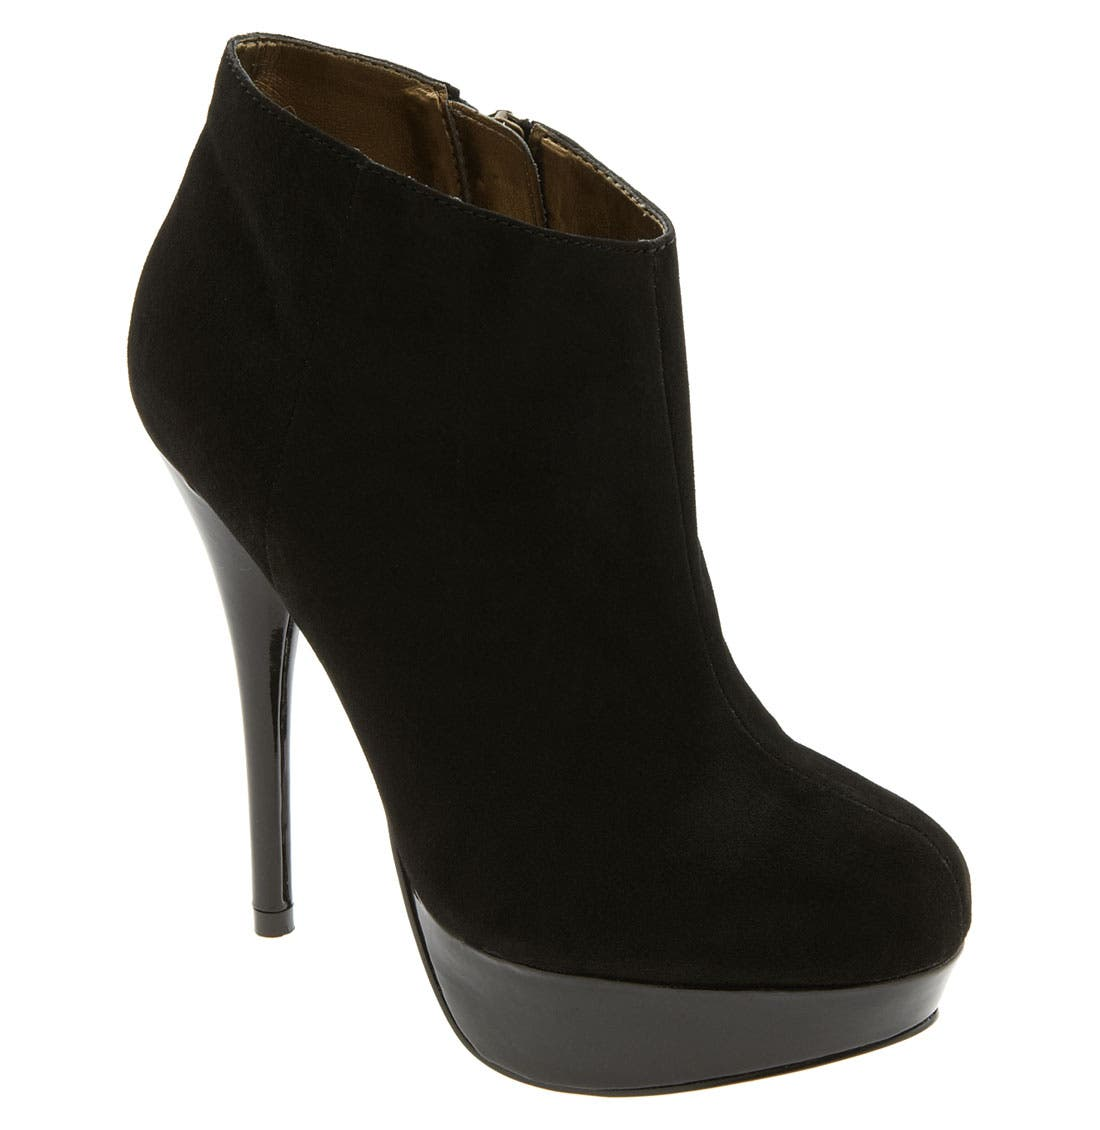 Main Image - Steve Madden 'Chelseey' Bootie